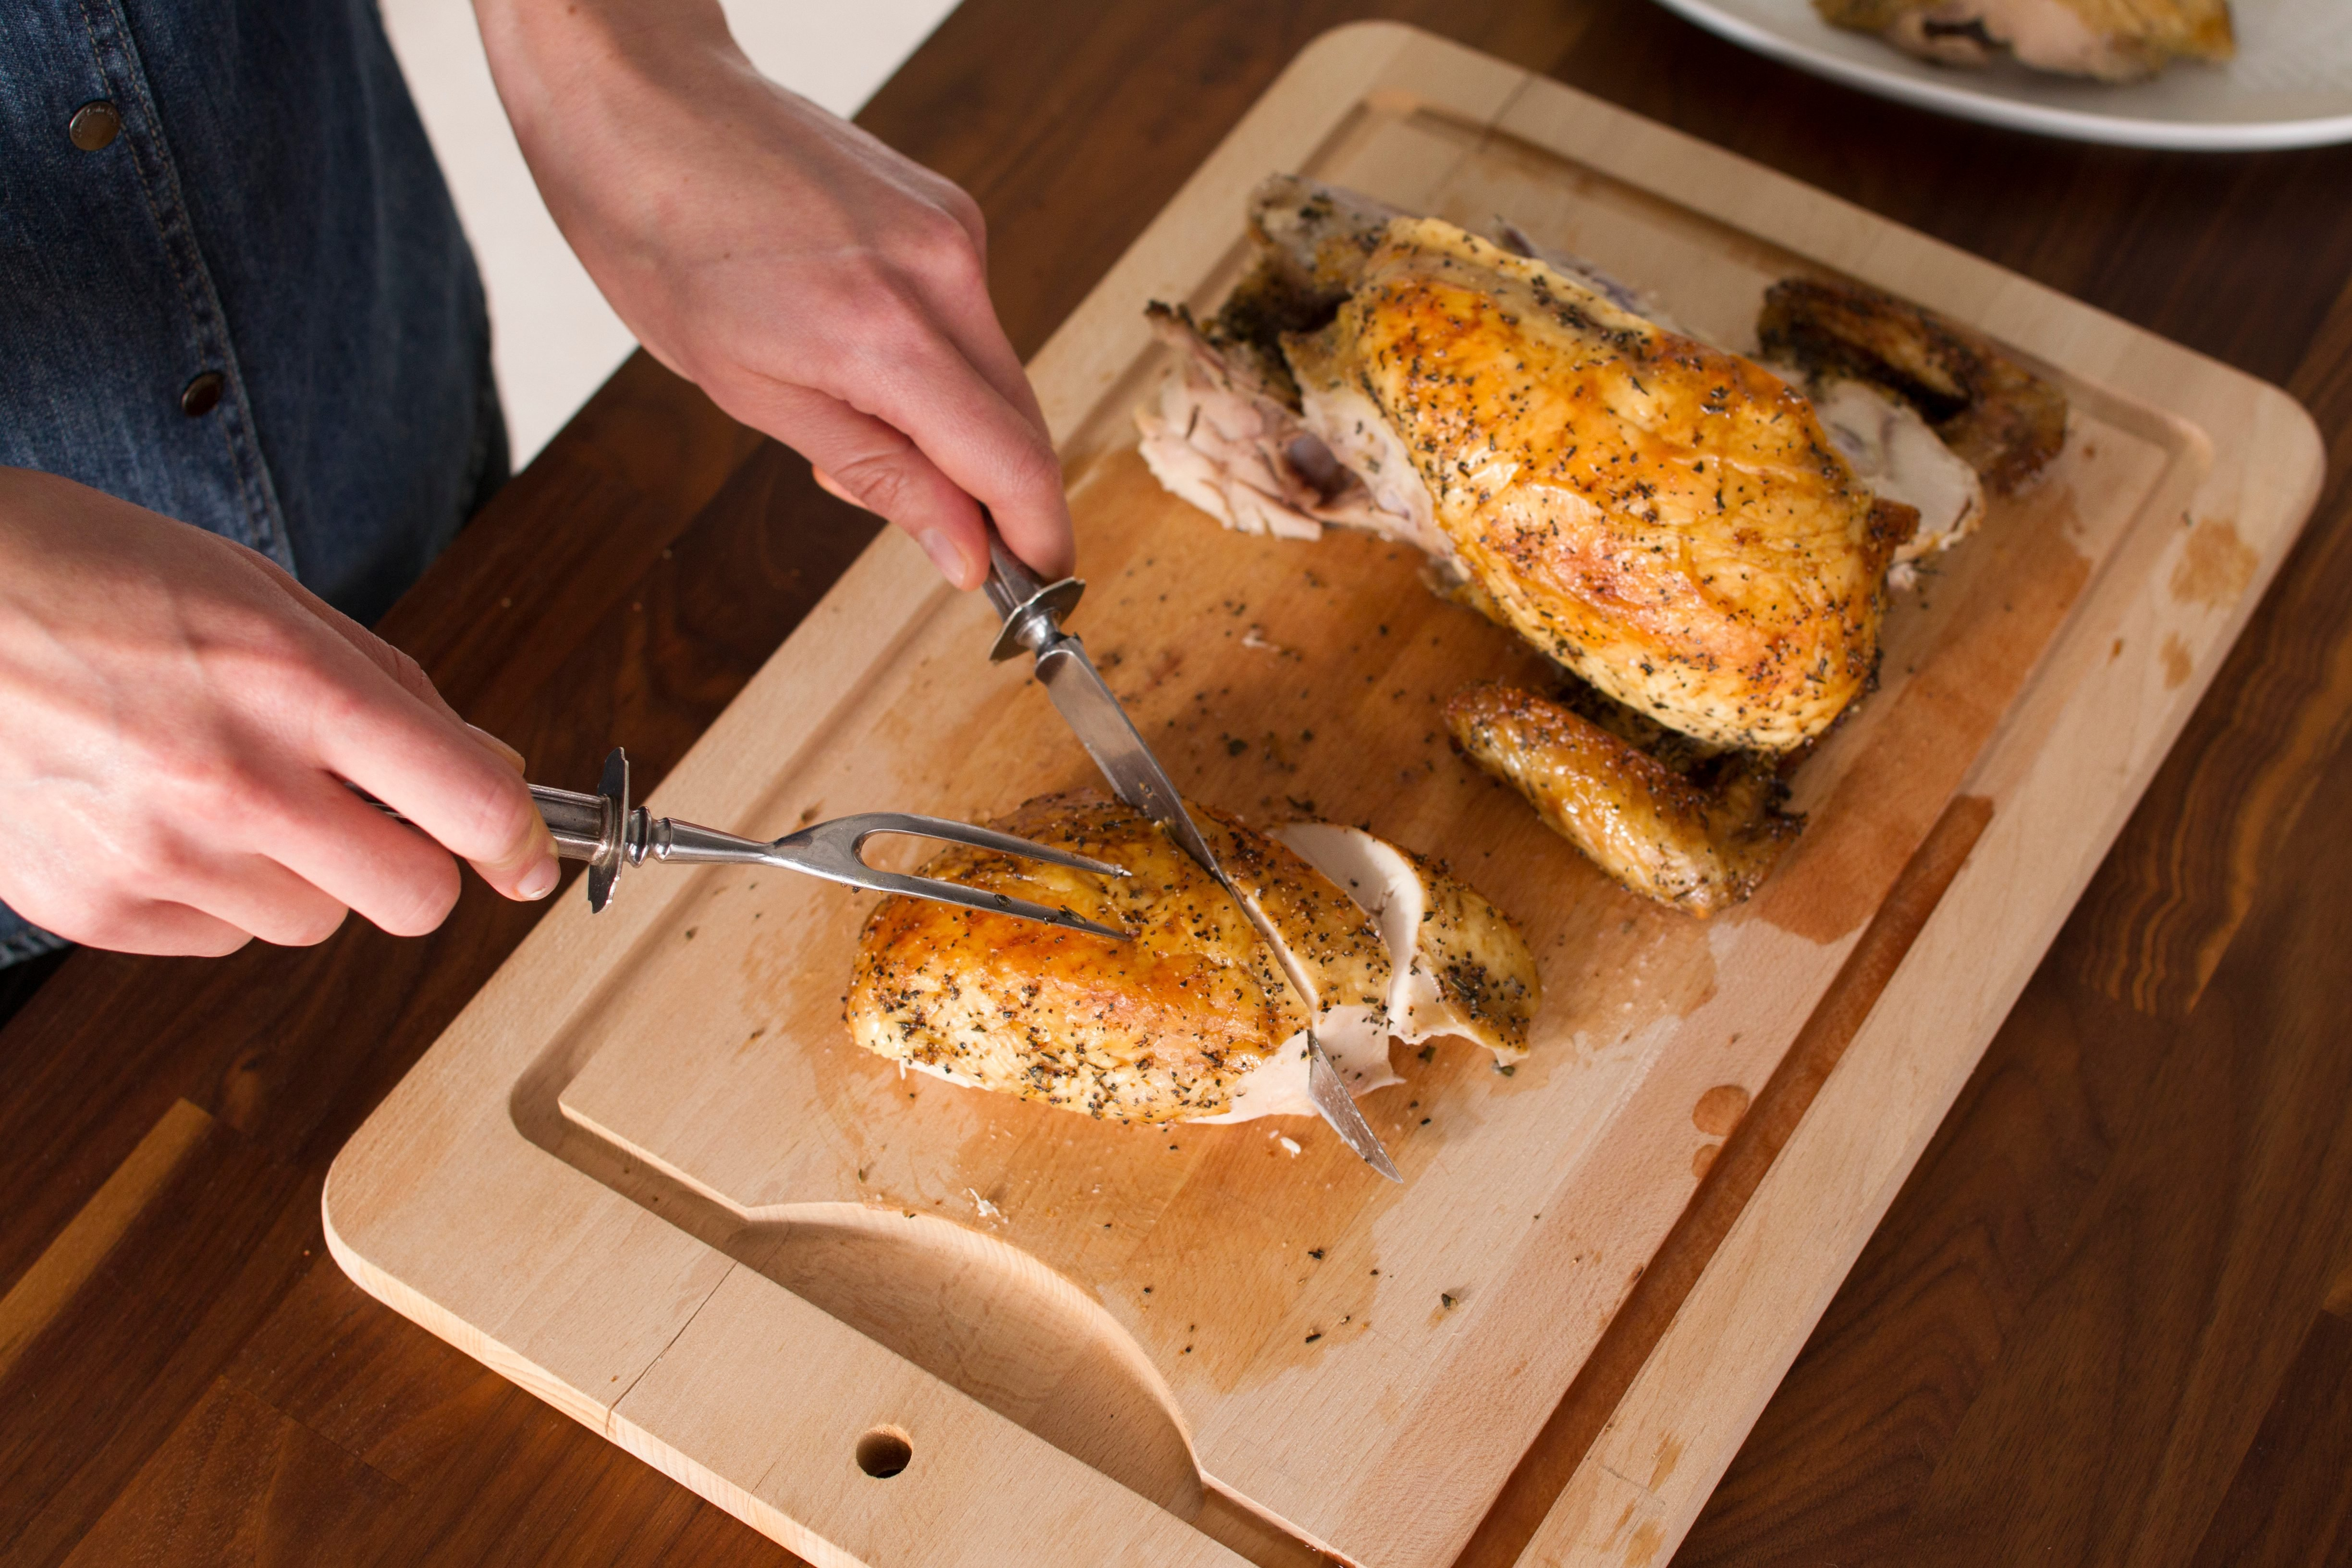 Person slicing into the chicken breast pieces on a wooden cutting board